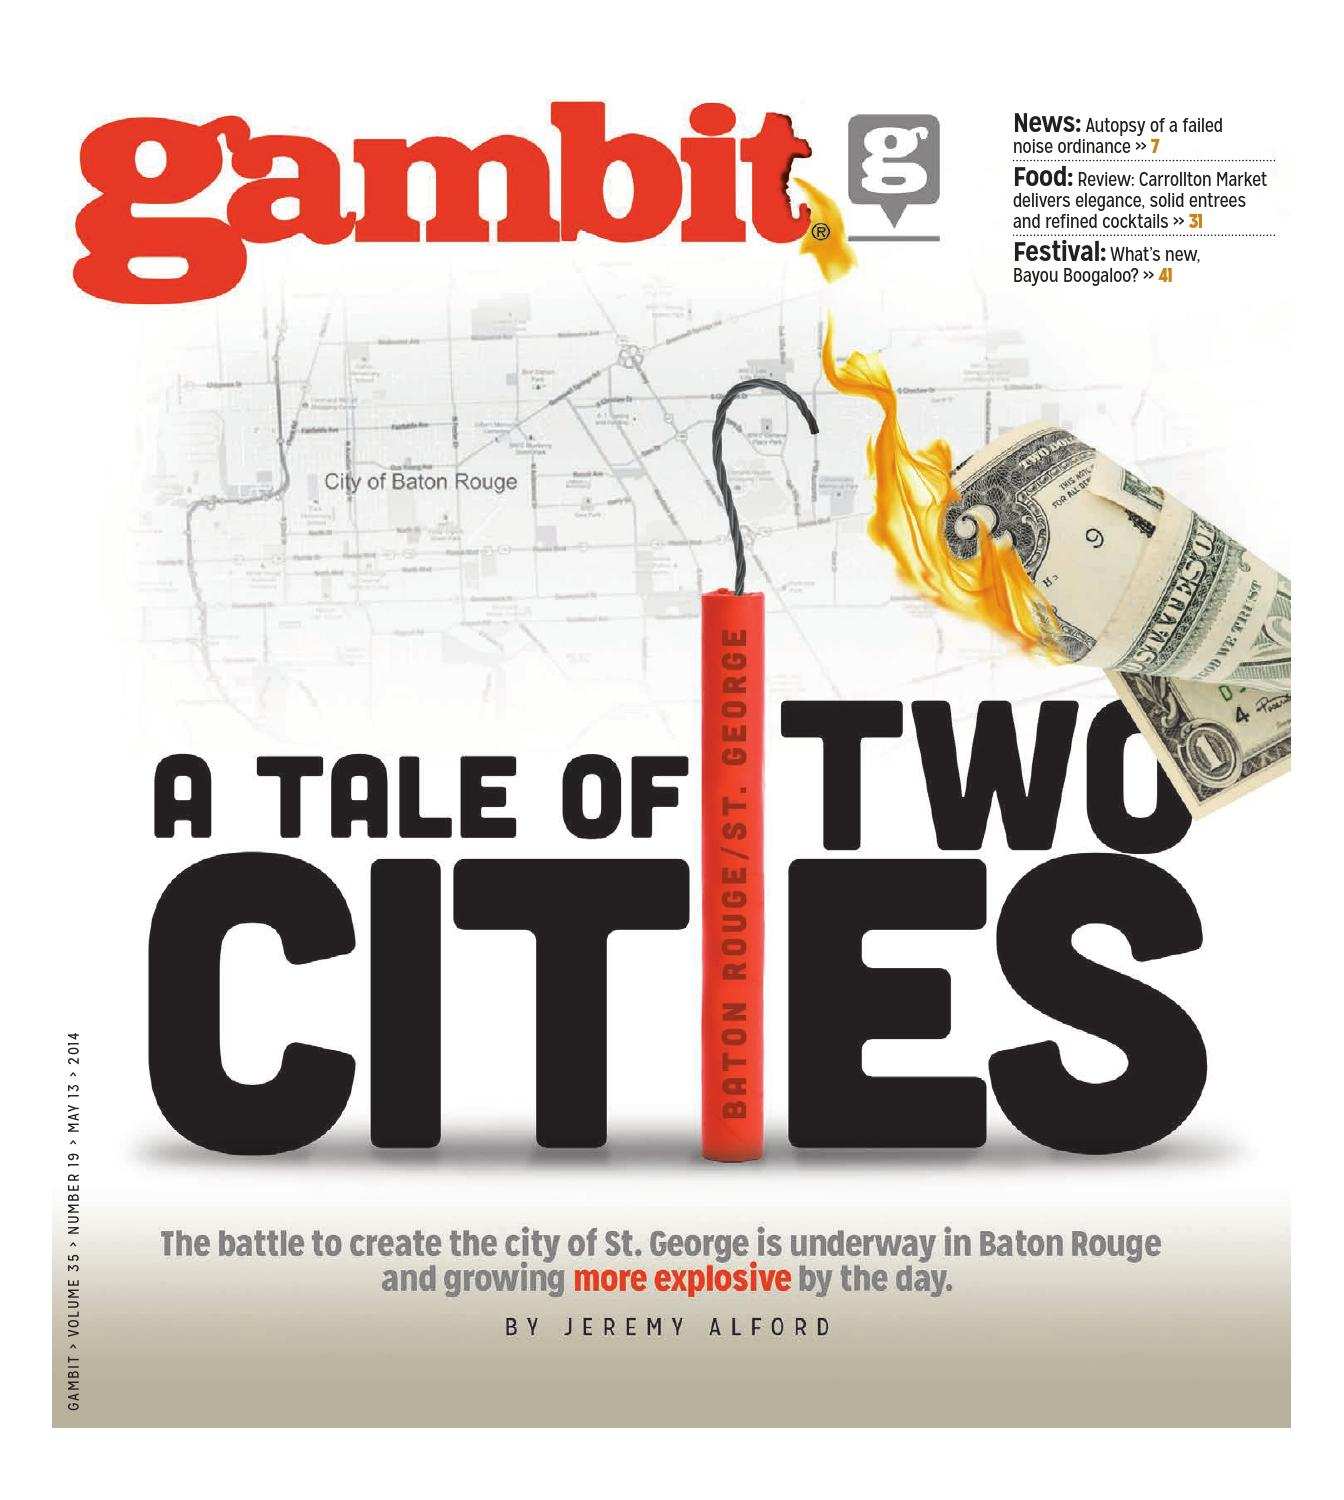 Gambit New Orleans May 13, 2014 by Gambit New Orleans - issuu